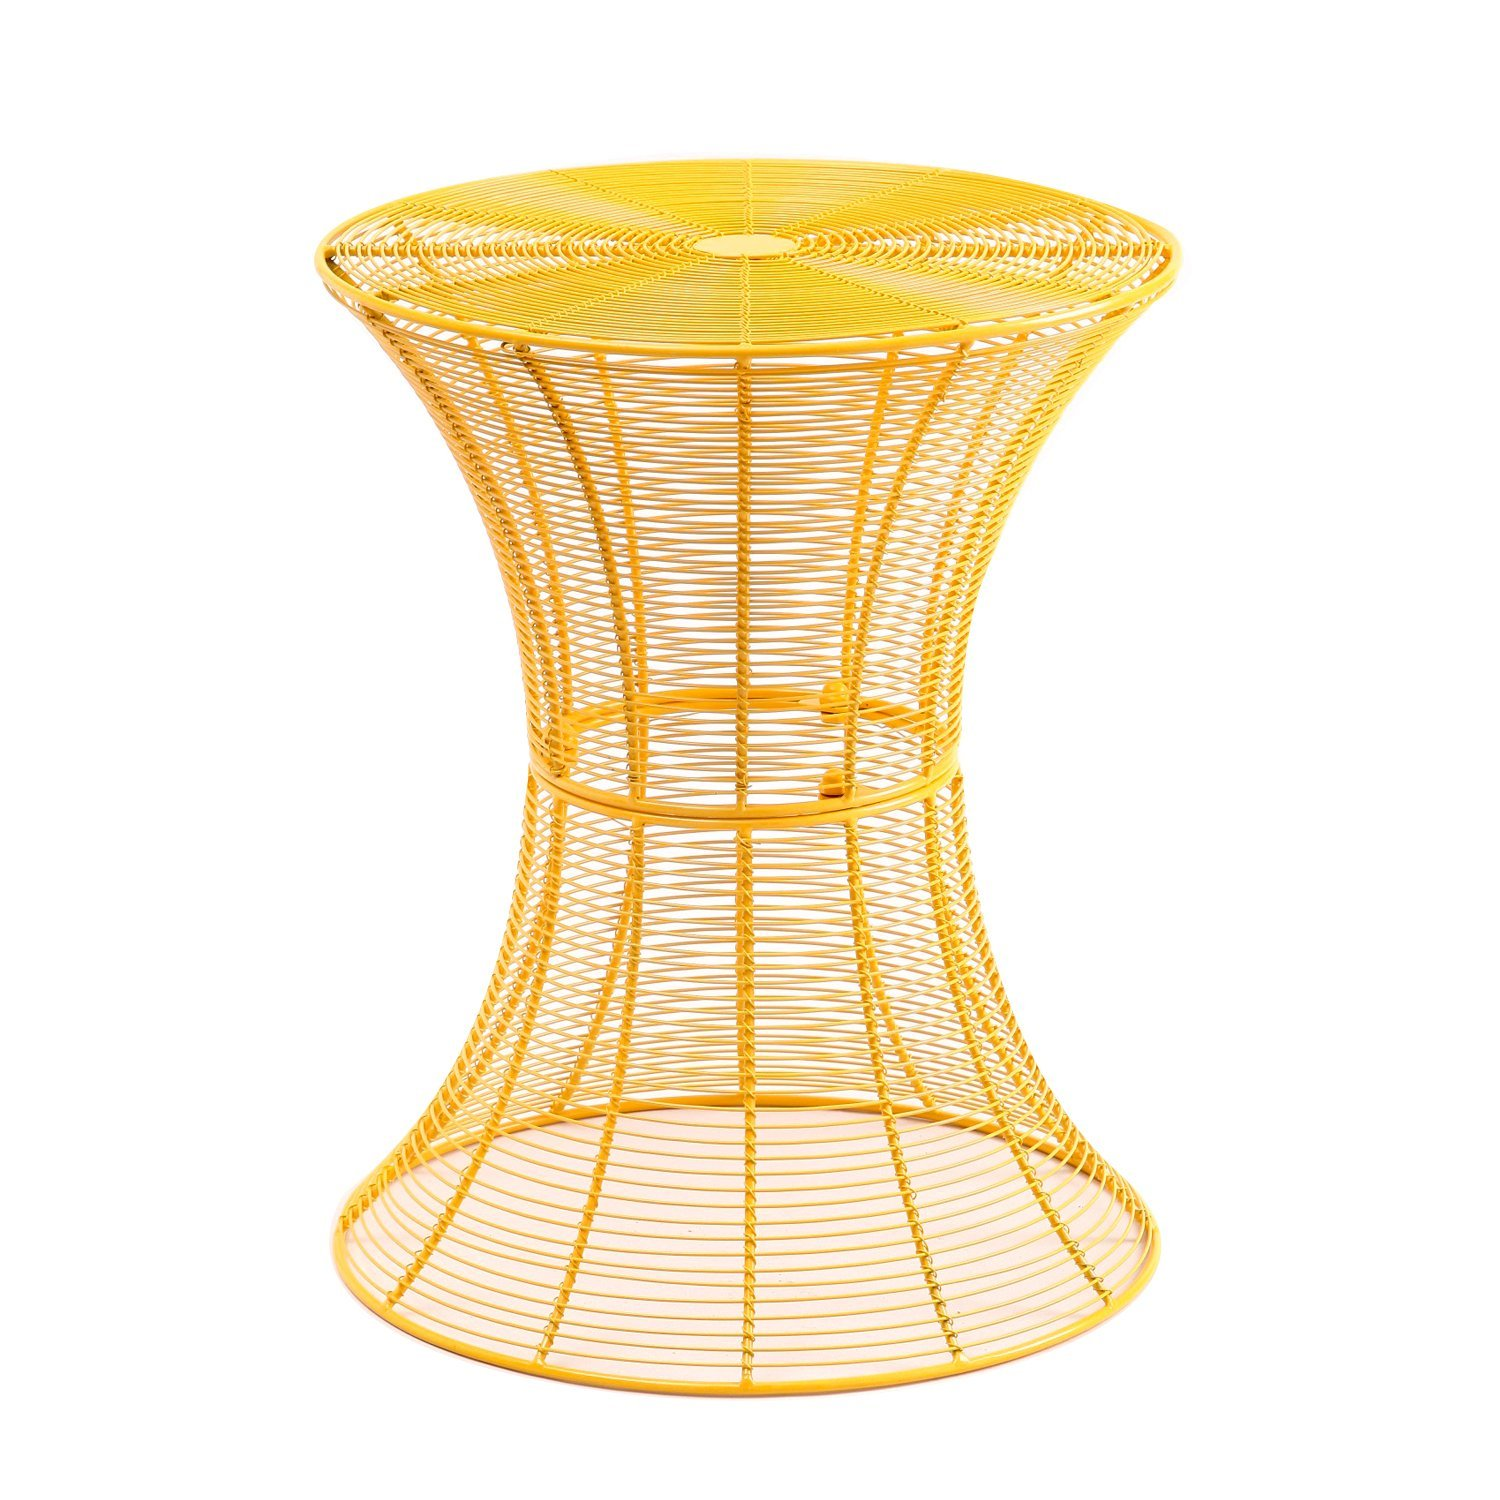 joveco round metal iron wire structure curved side table end adeco accent spiral yellow garden blue tablecloth faux leather furniture ikea childrens storage units small black wood